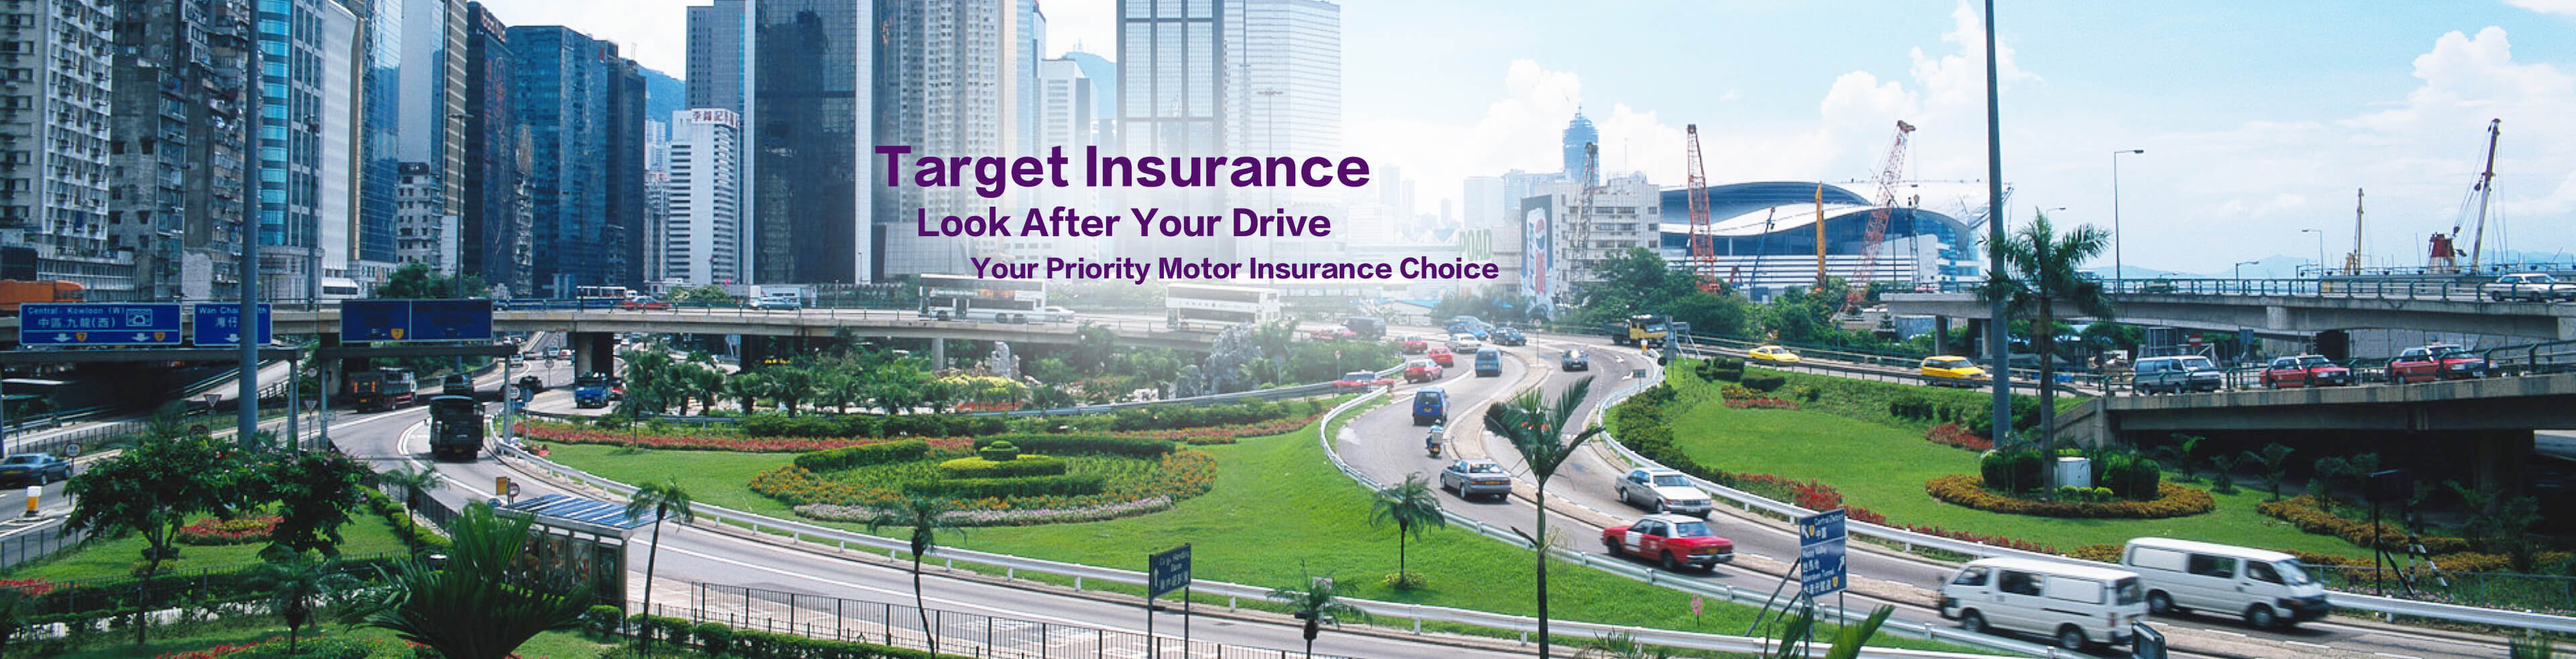 Target Insurance, Look After Your Drive Along The Way. Your Priority Motor Insurance Choice.